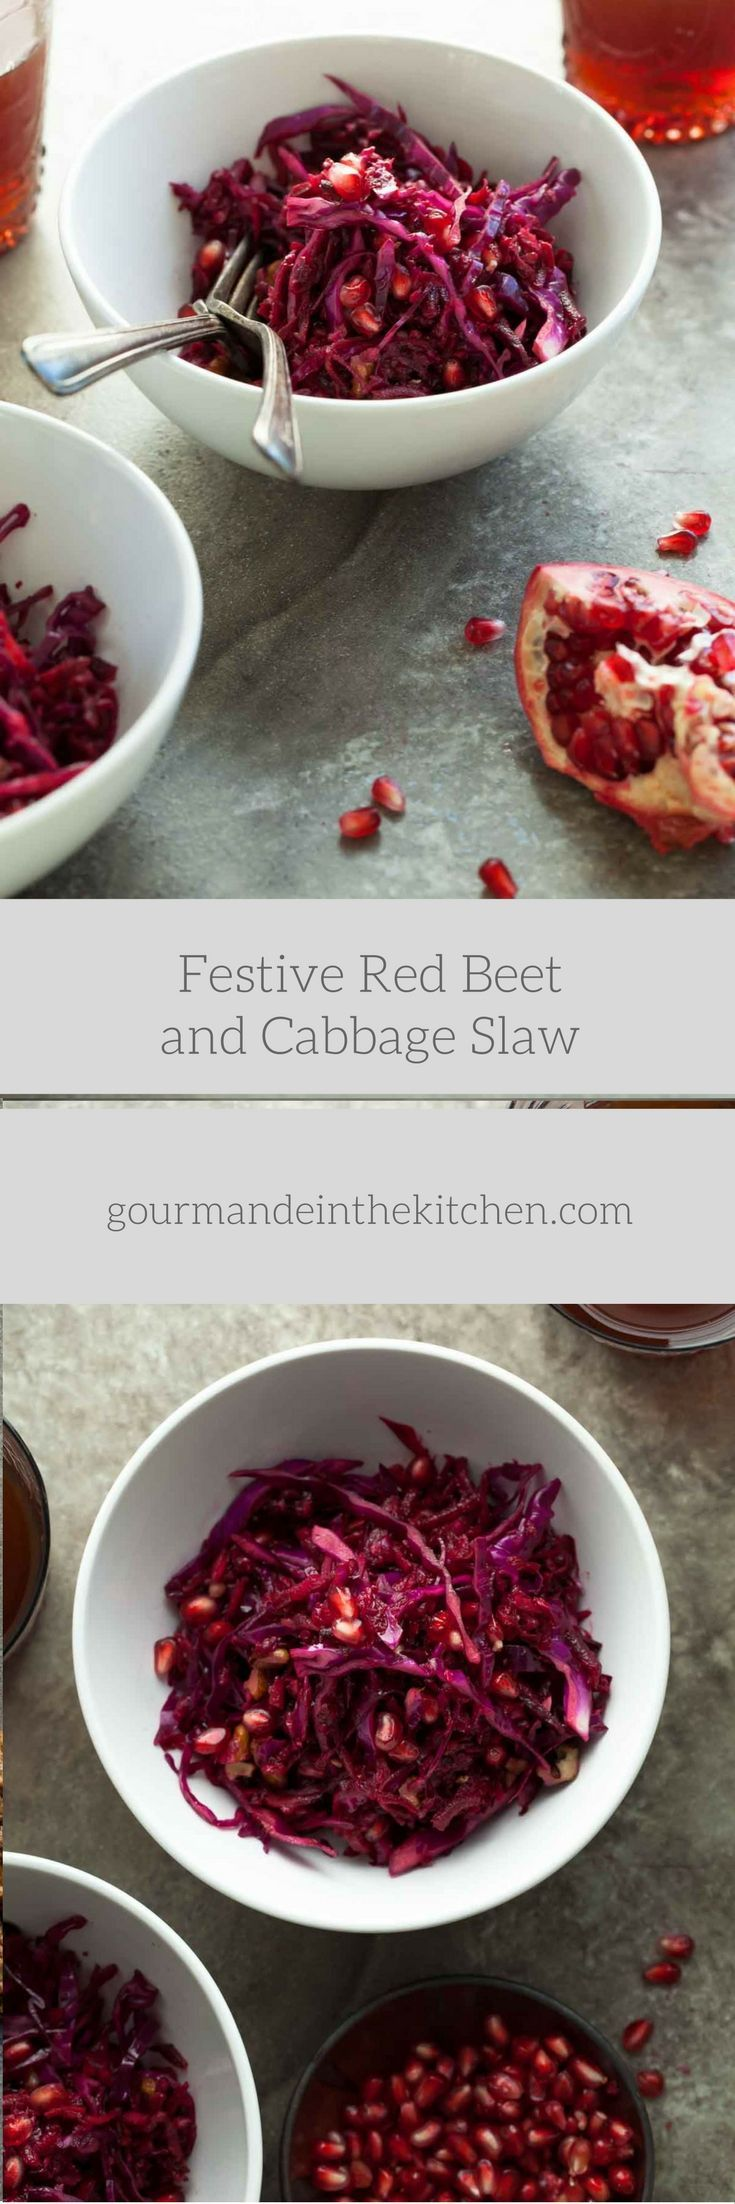 A festive red slaw filled with the bold colors and flavors of beets, carrots, red cabbage and pomegranate. The holidays are fast approaching, and pretty soon we'll be in the thick of it. Between t…